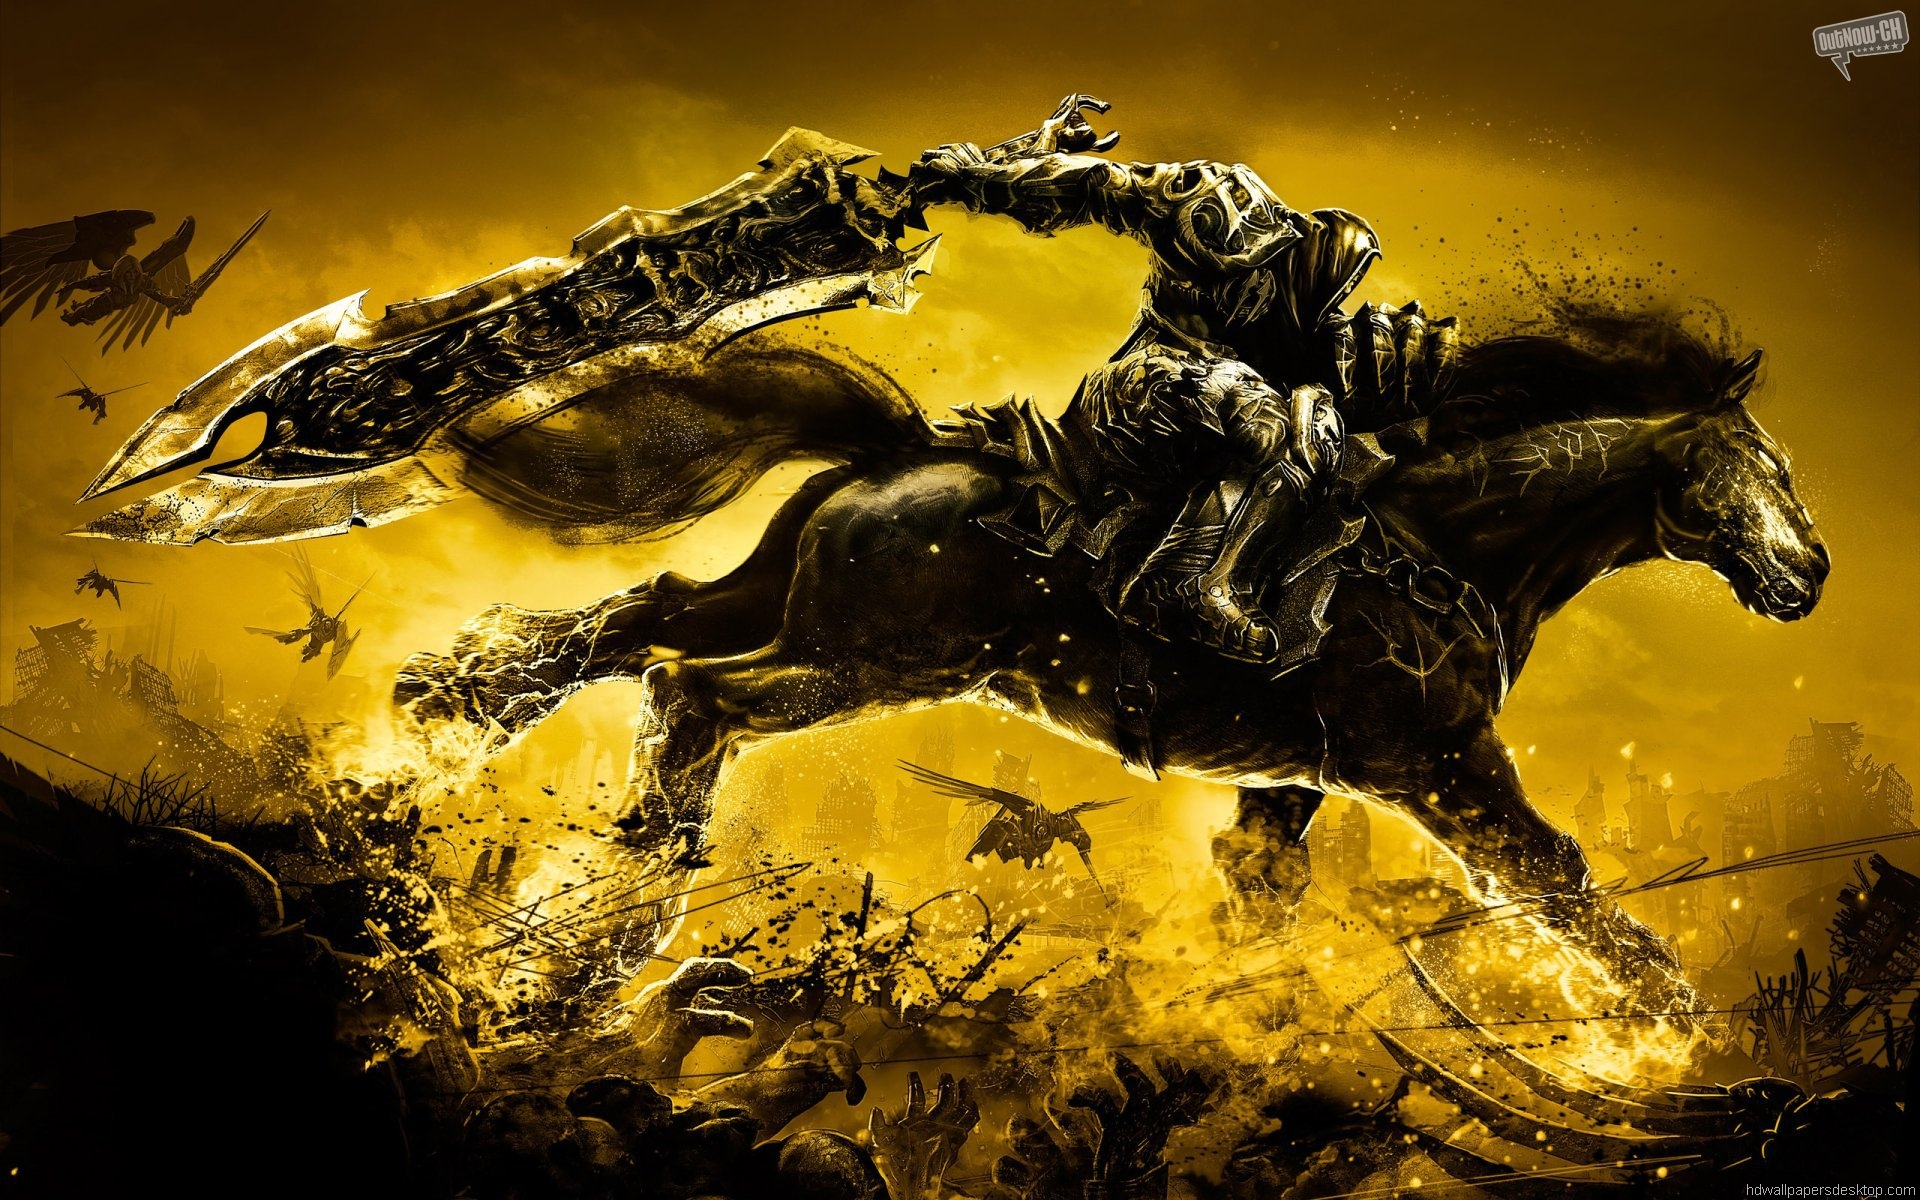 Hd Wallpaper For Computer God Of War Horse 70980 Hd Wallpaper Backgrounds Download